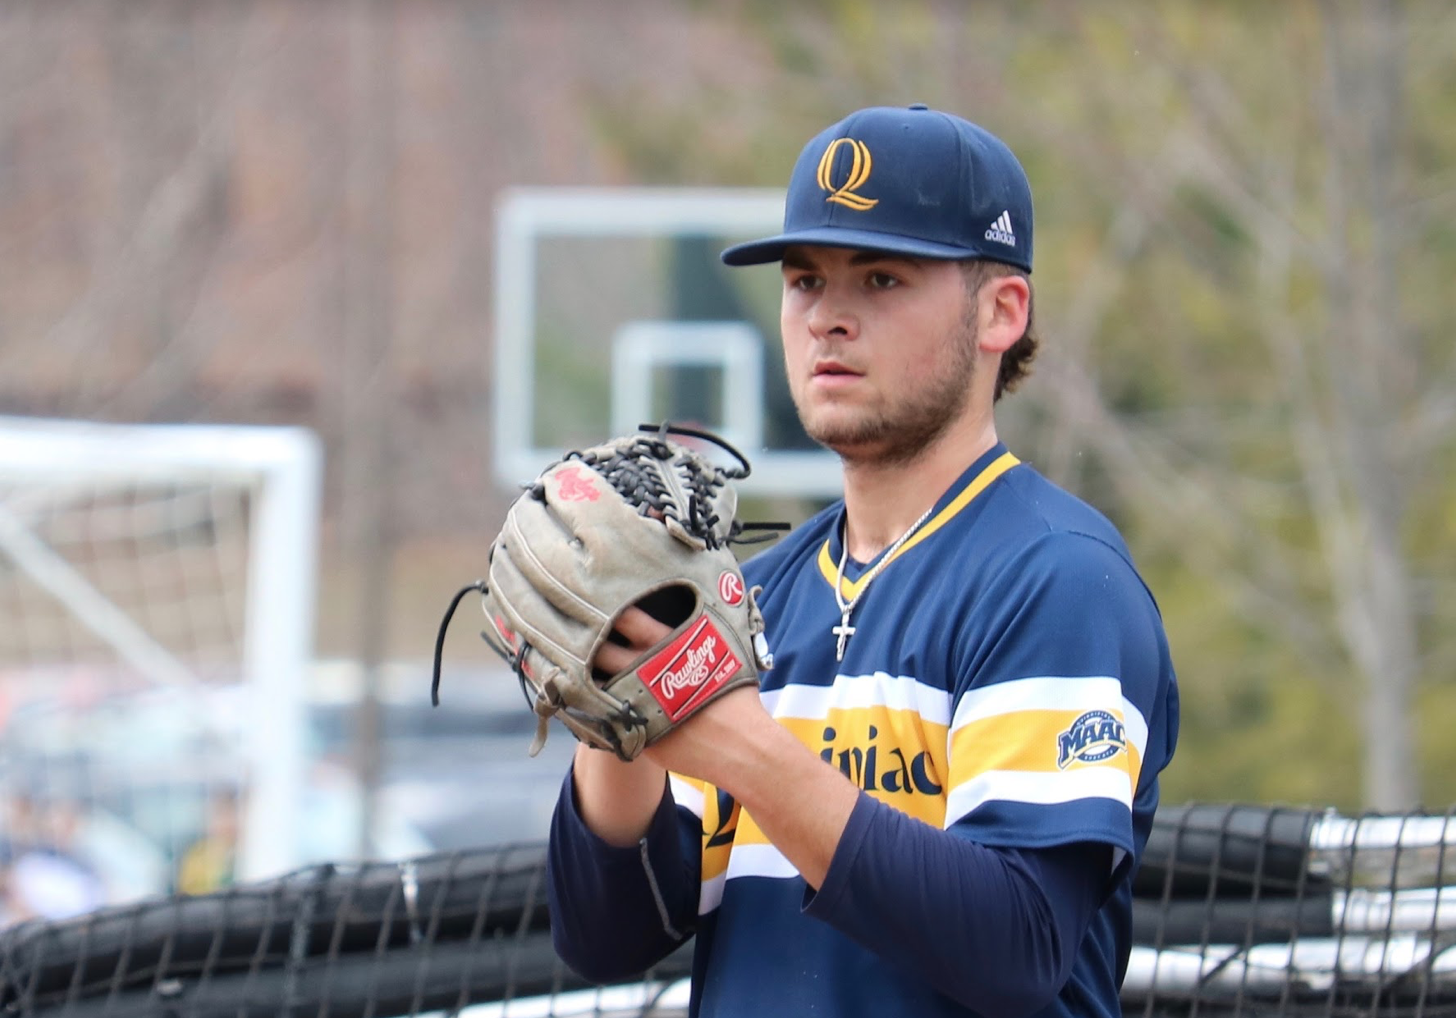 Quinnipiac baseball blasts Siena 12-4, improves to 7-0 in the MAAC